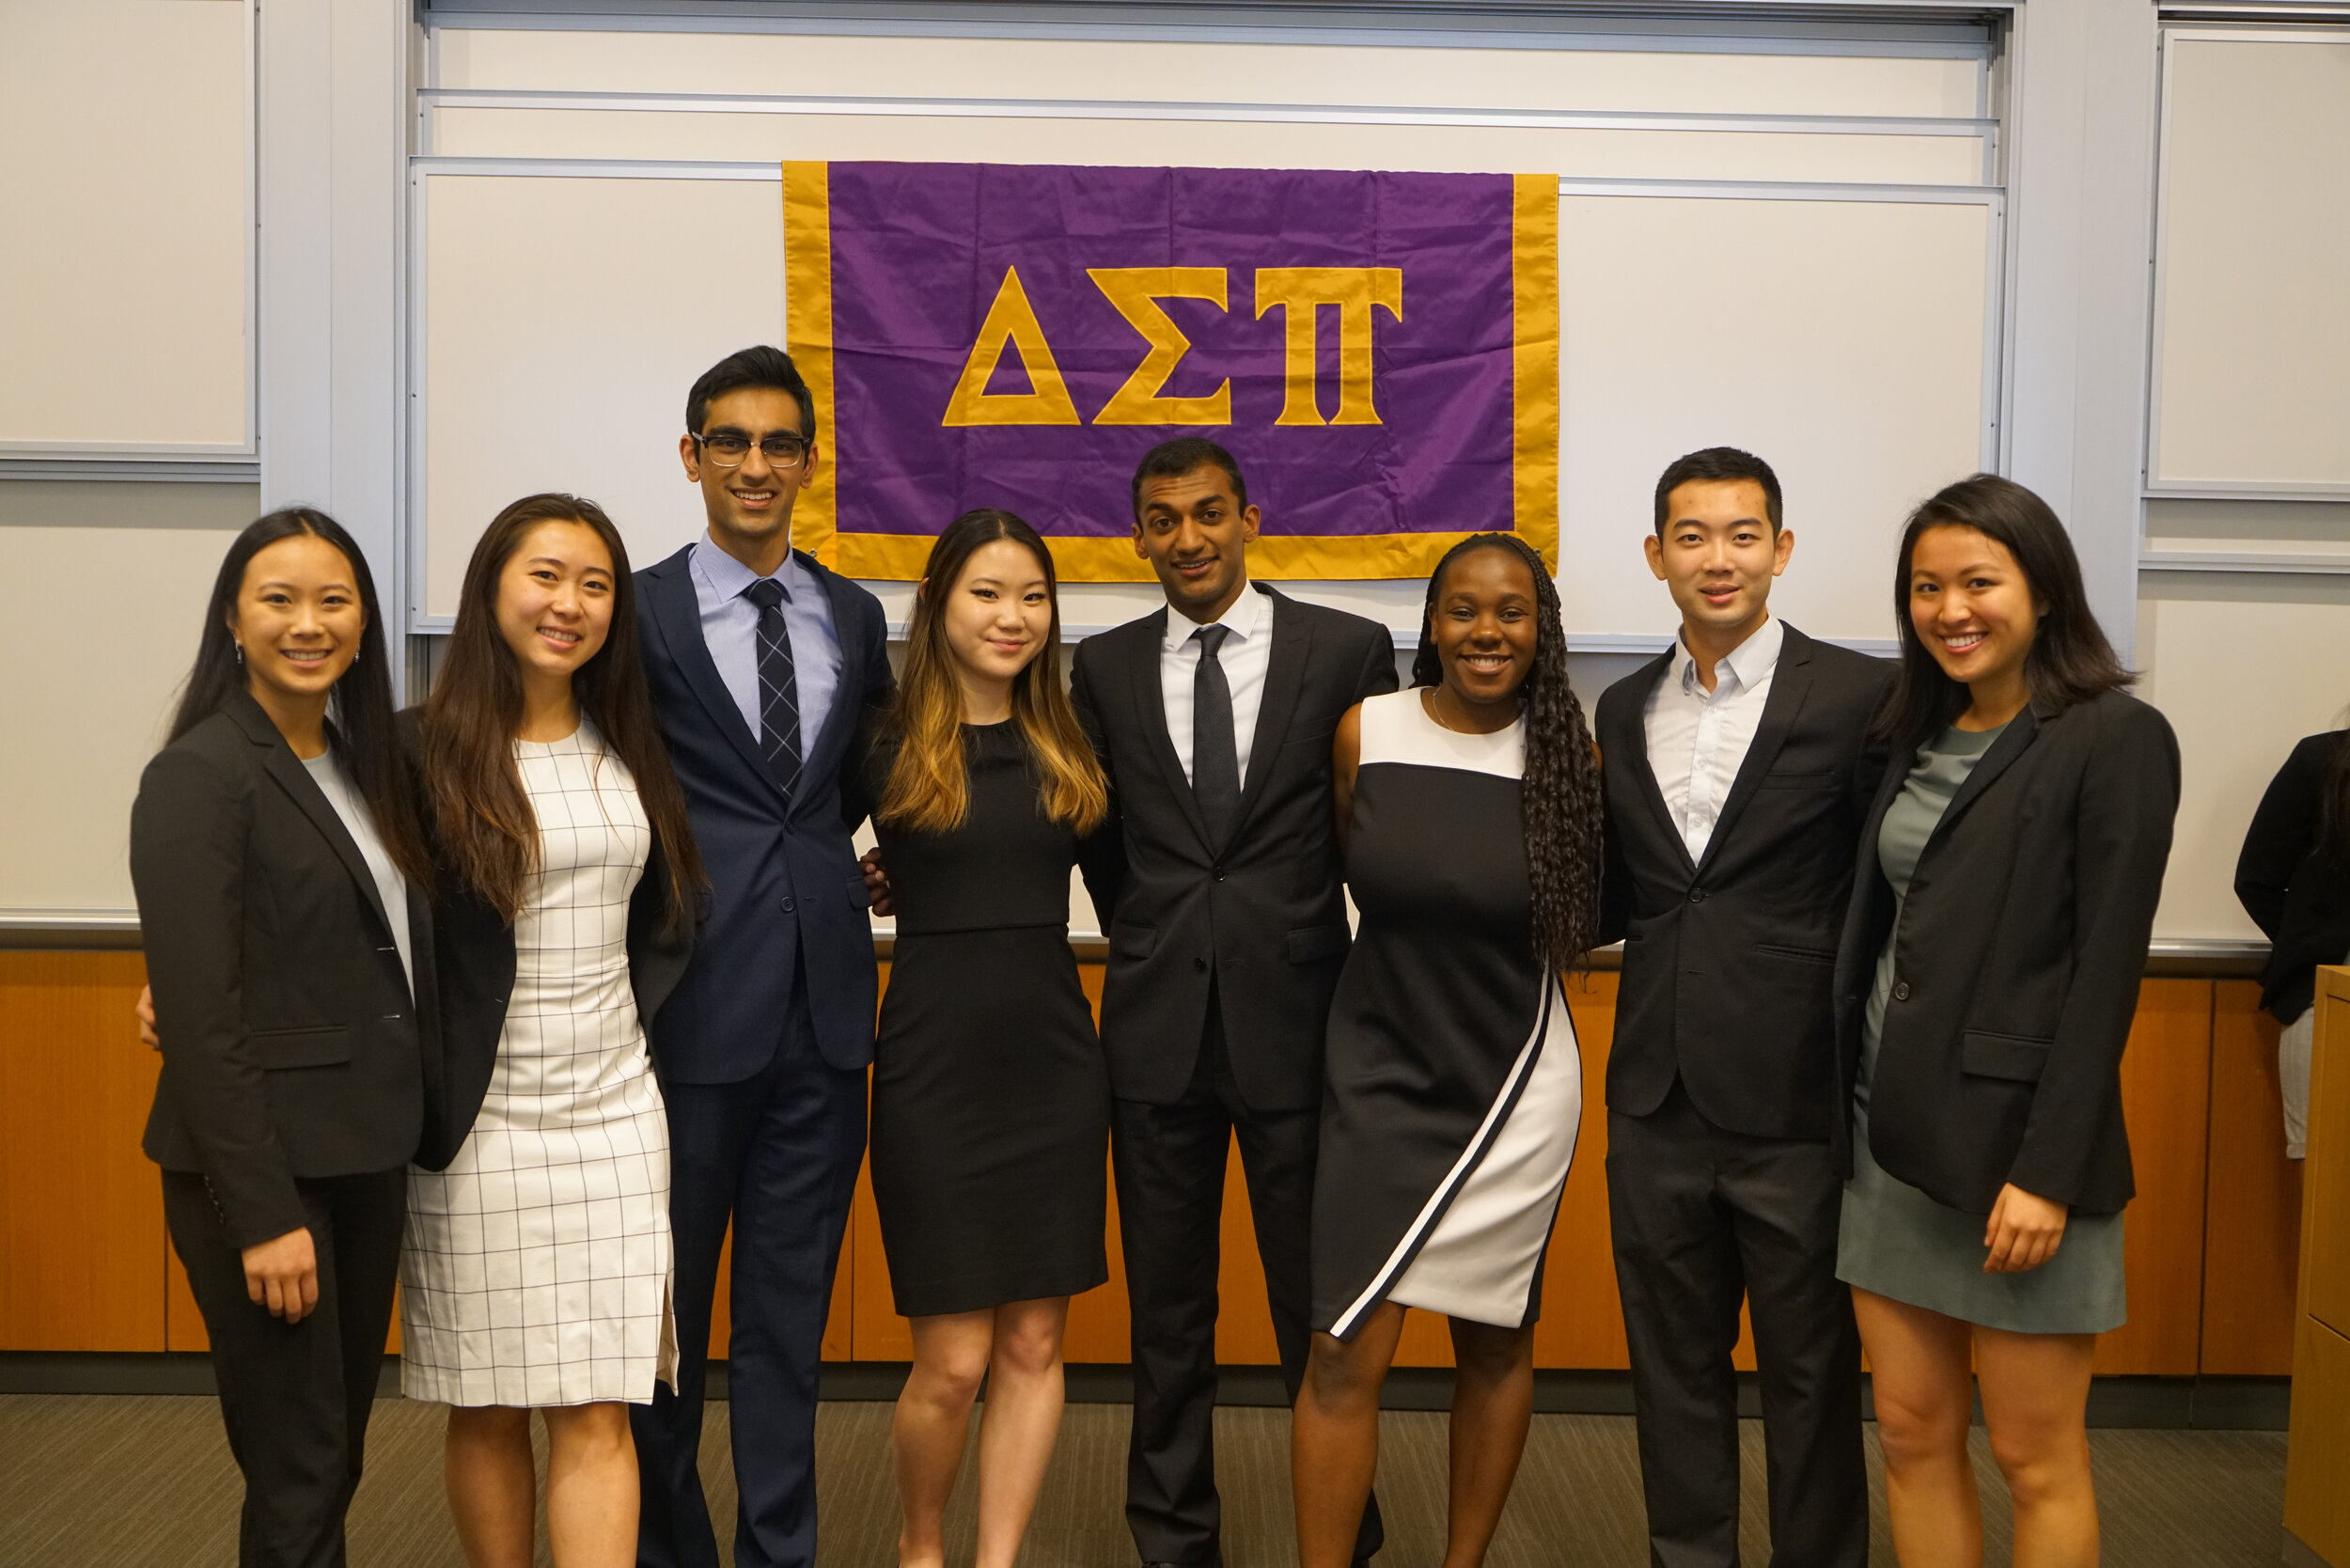 About Us - The Beta Nu Chapter of Delta Sigma Pi upholds the highest standards of professionalism, service, and brotherhood